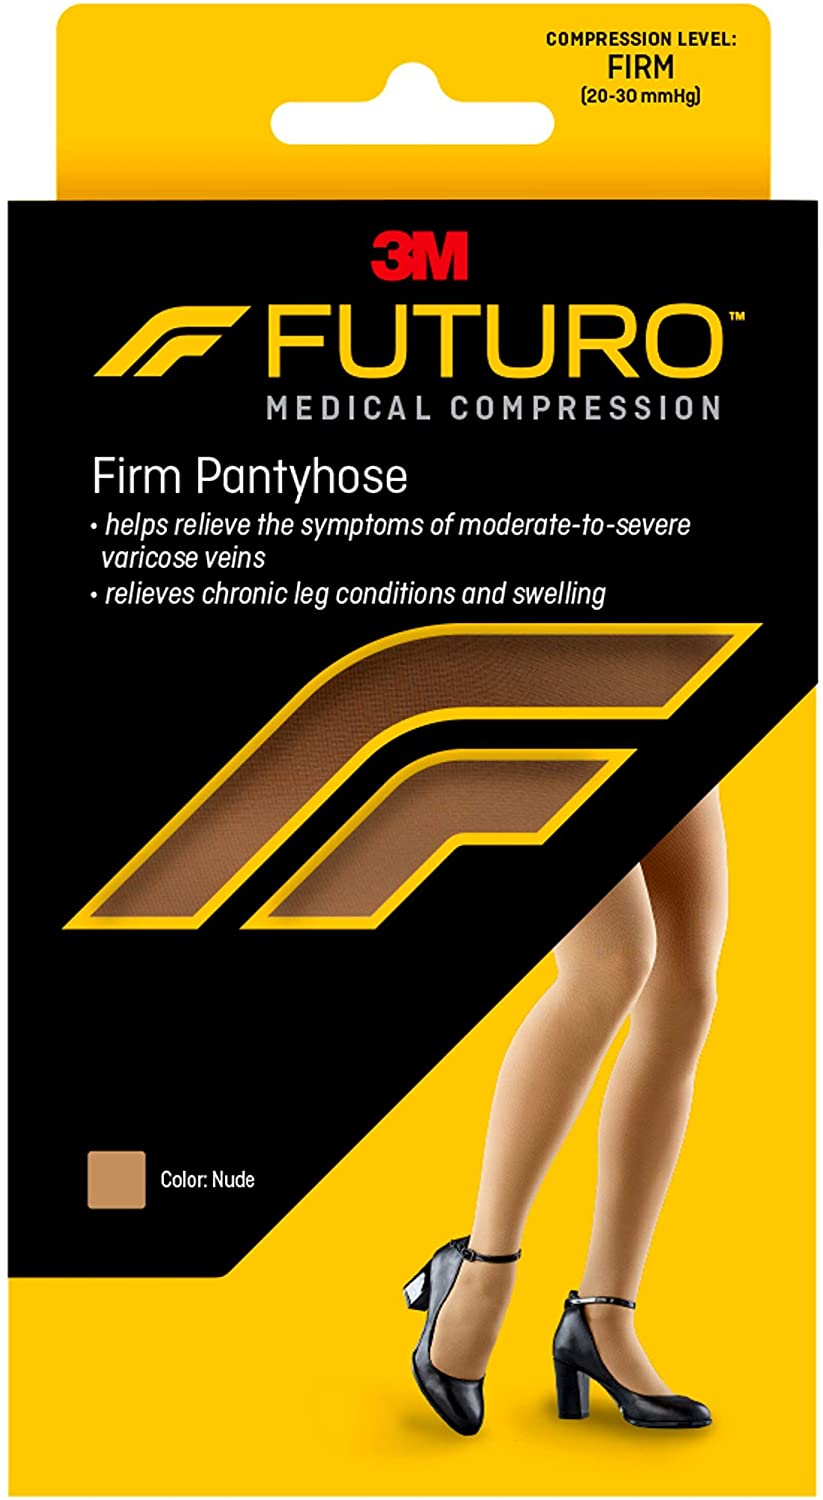 Futuro Pantyhose for Women, Firm Compression, 20-30 mm/Hg, Helps Improve Circulation to Help Minmize Swelling